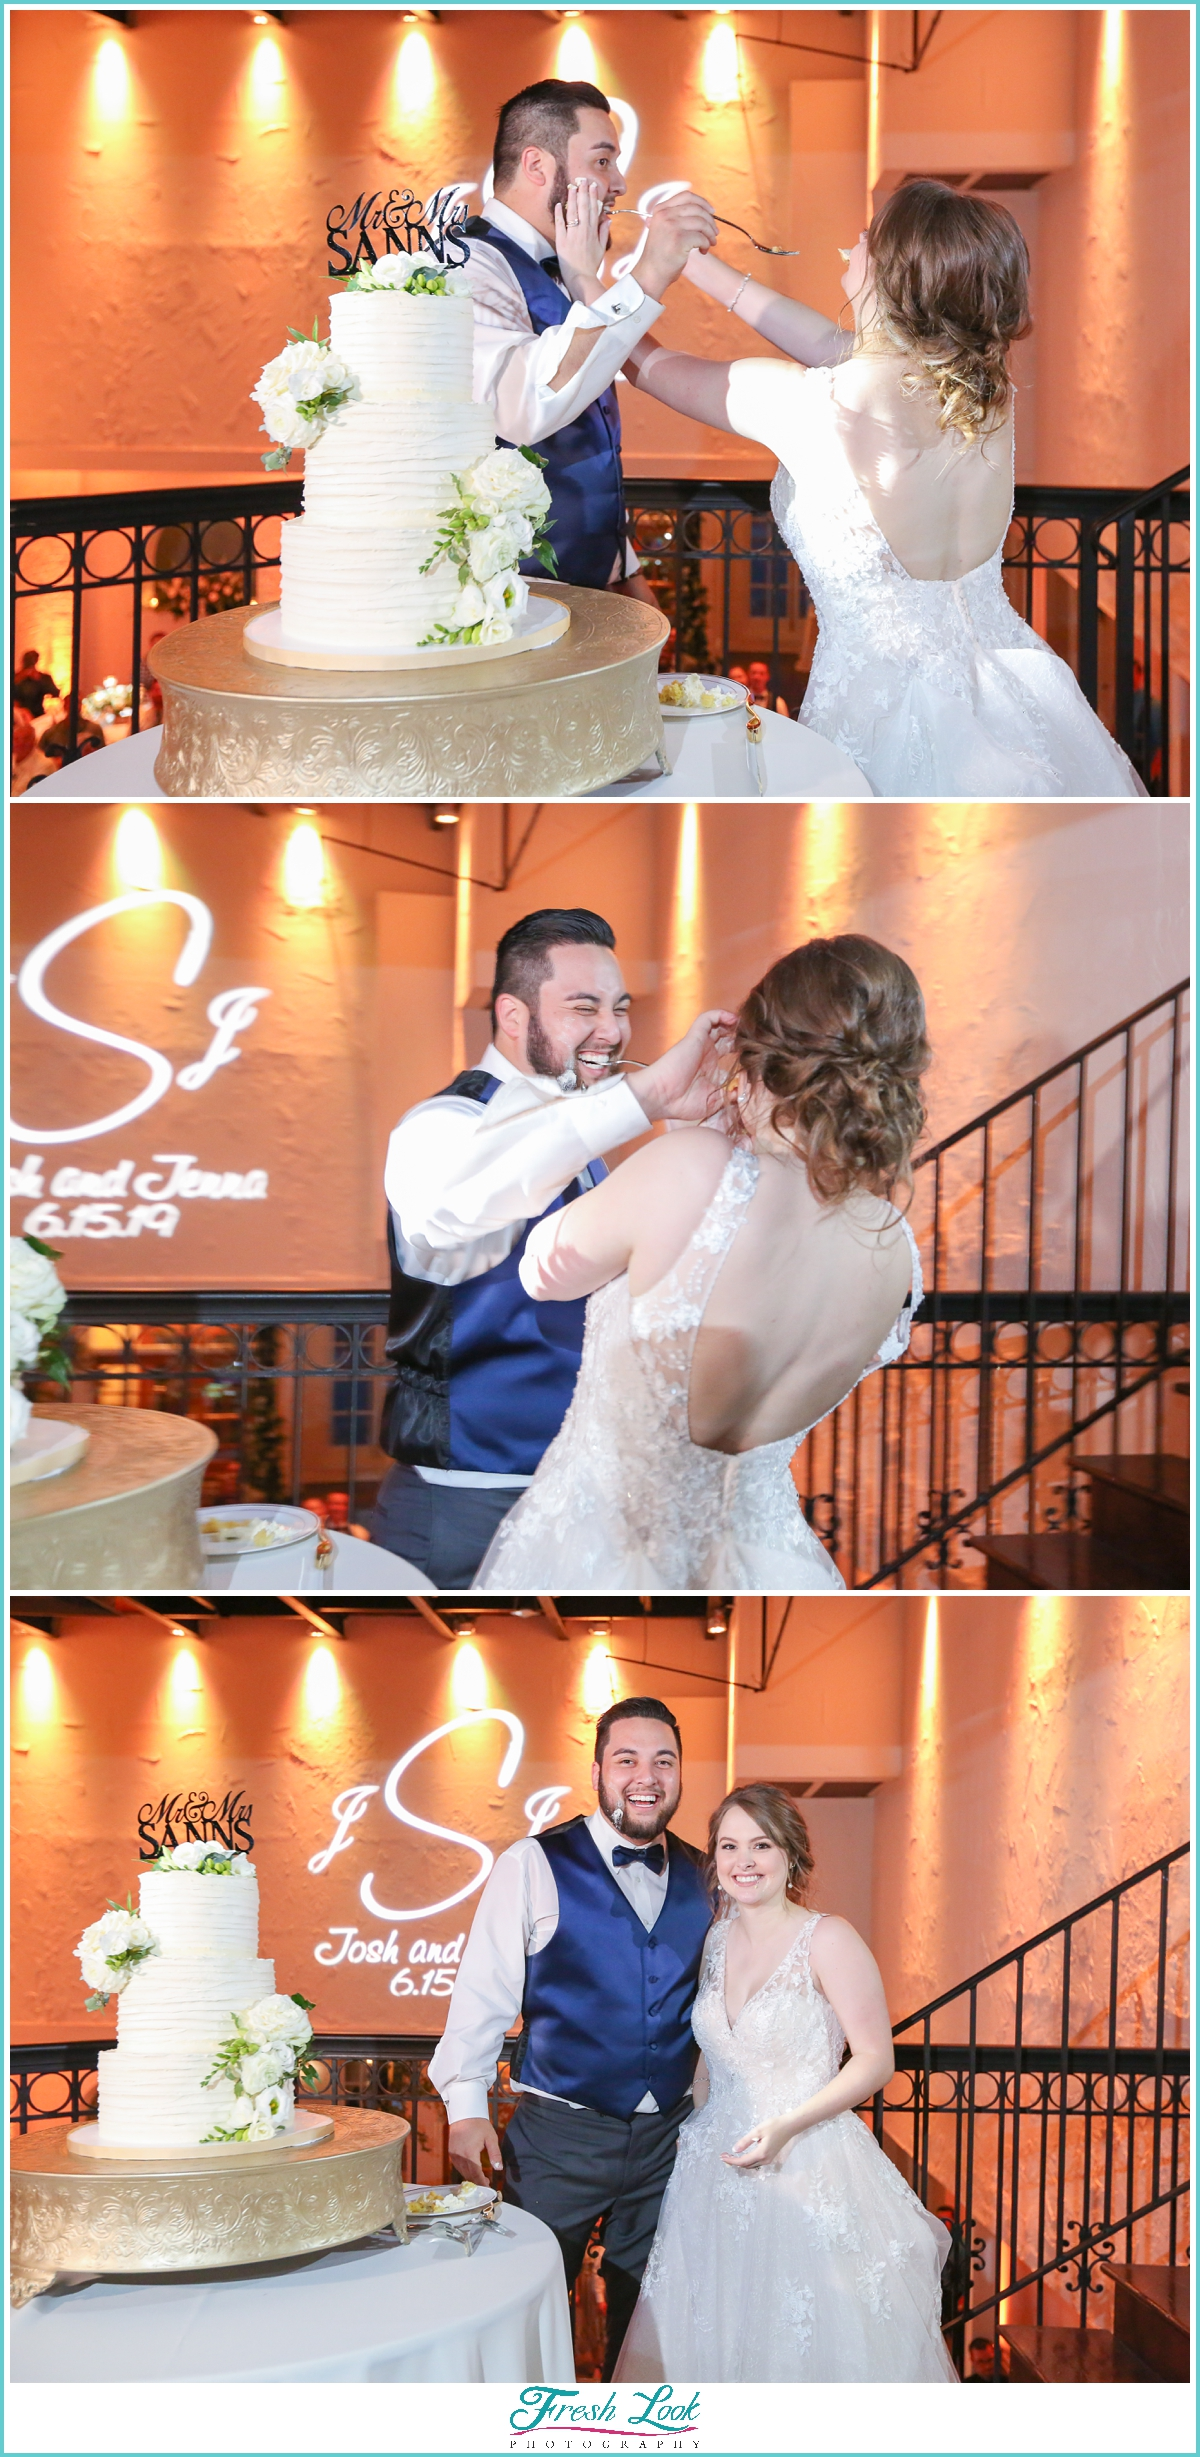 bride and groom smooshing cake in each other's face